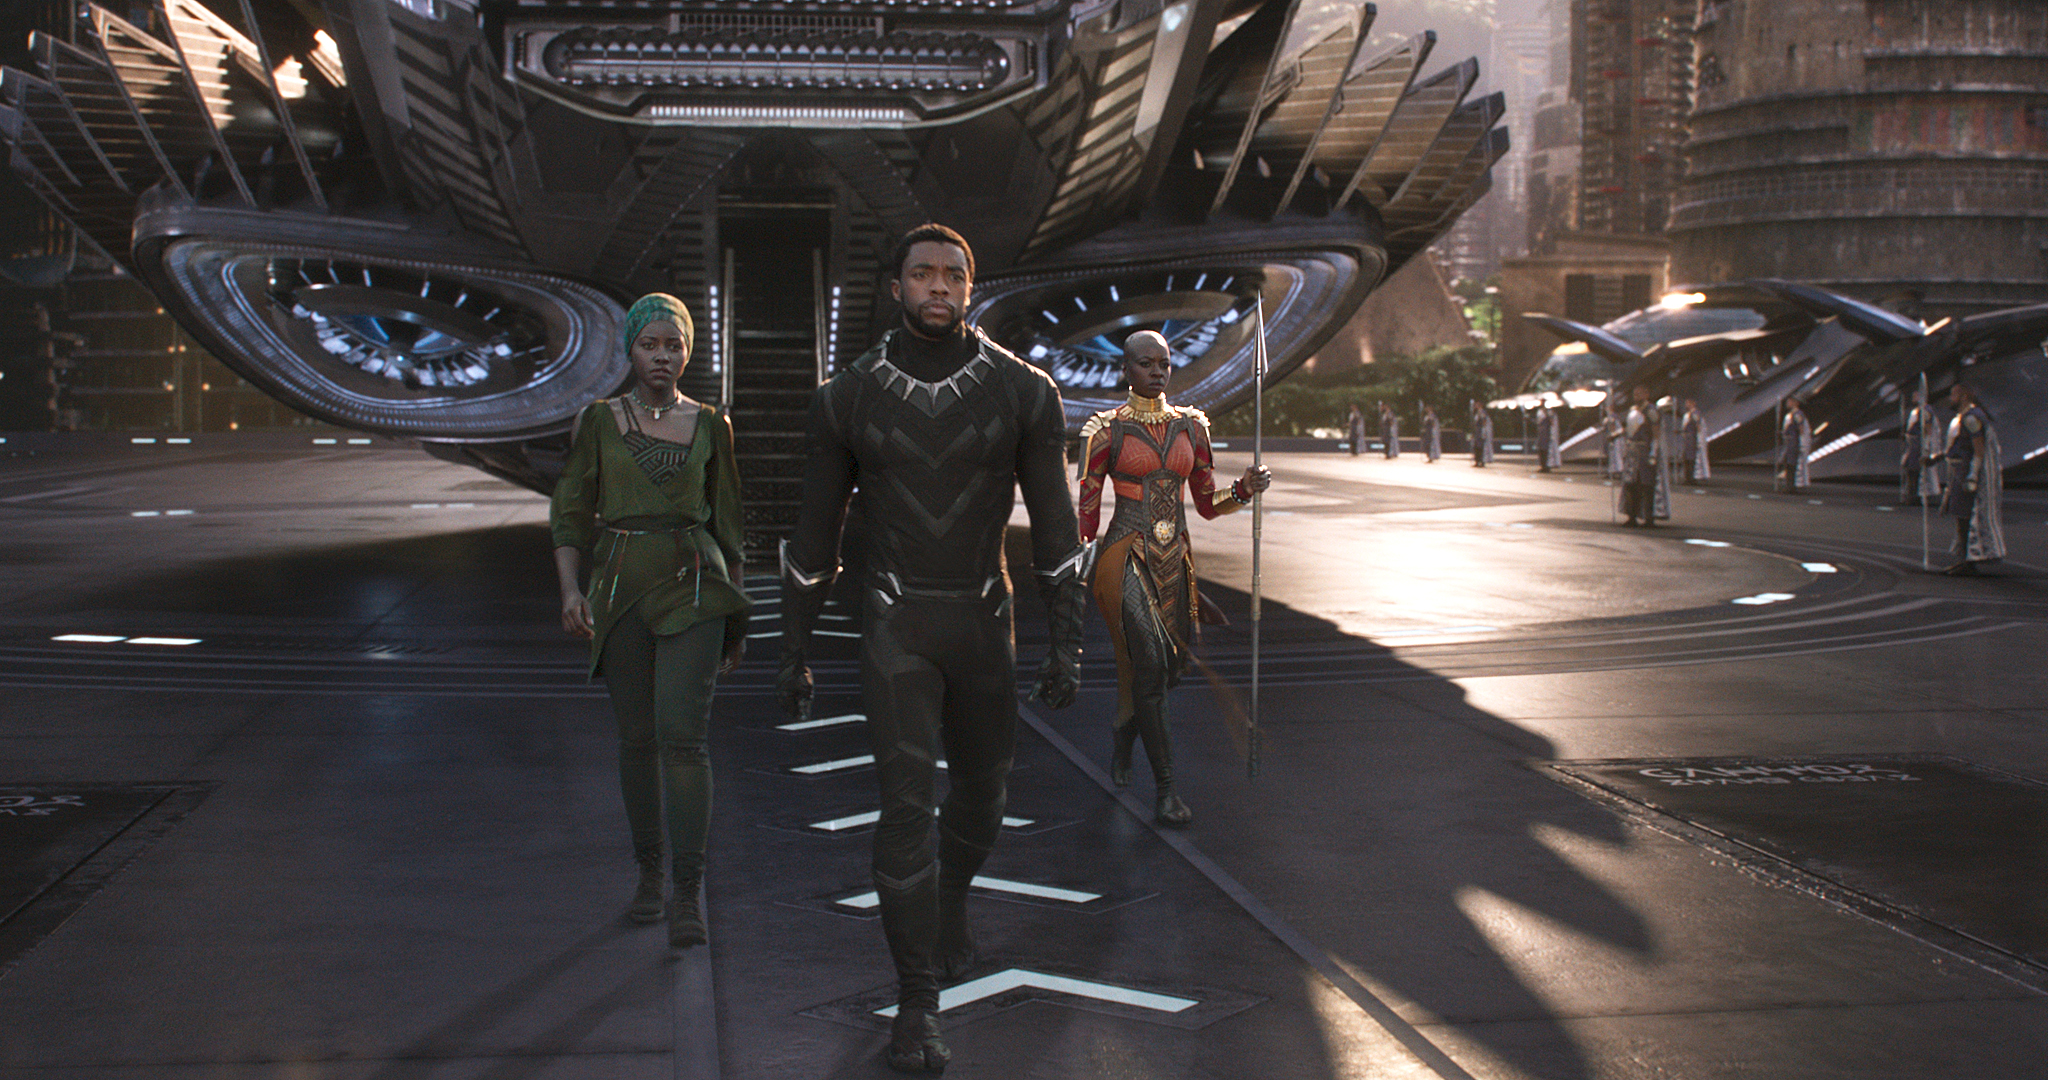 A still from the movie Black Panther set on a landing pad in the fictional city of Birnin Zana.